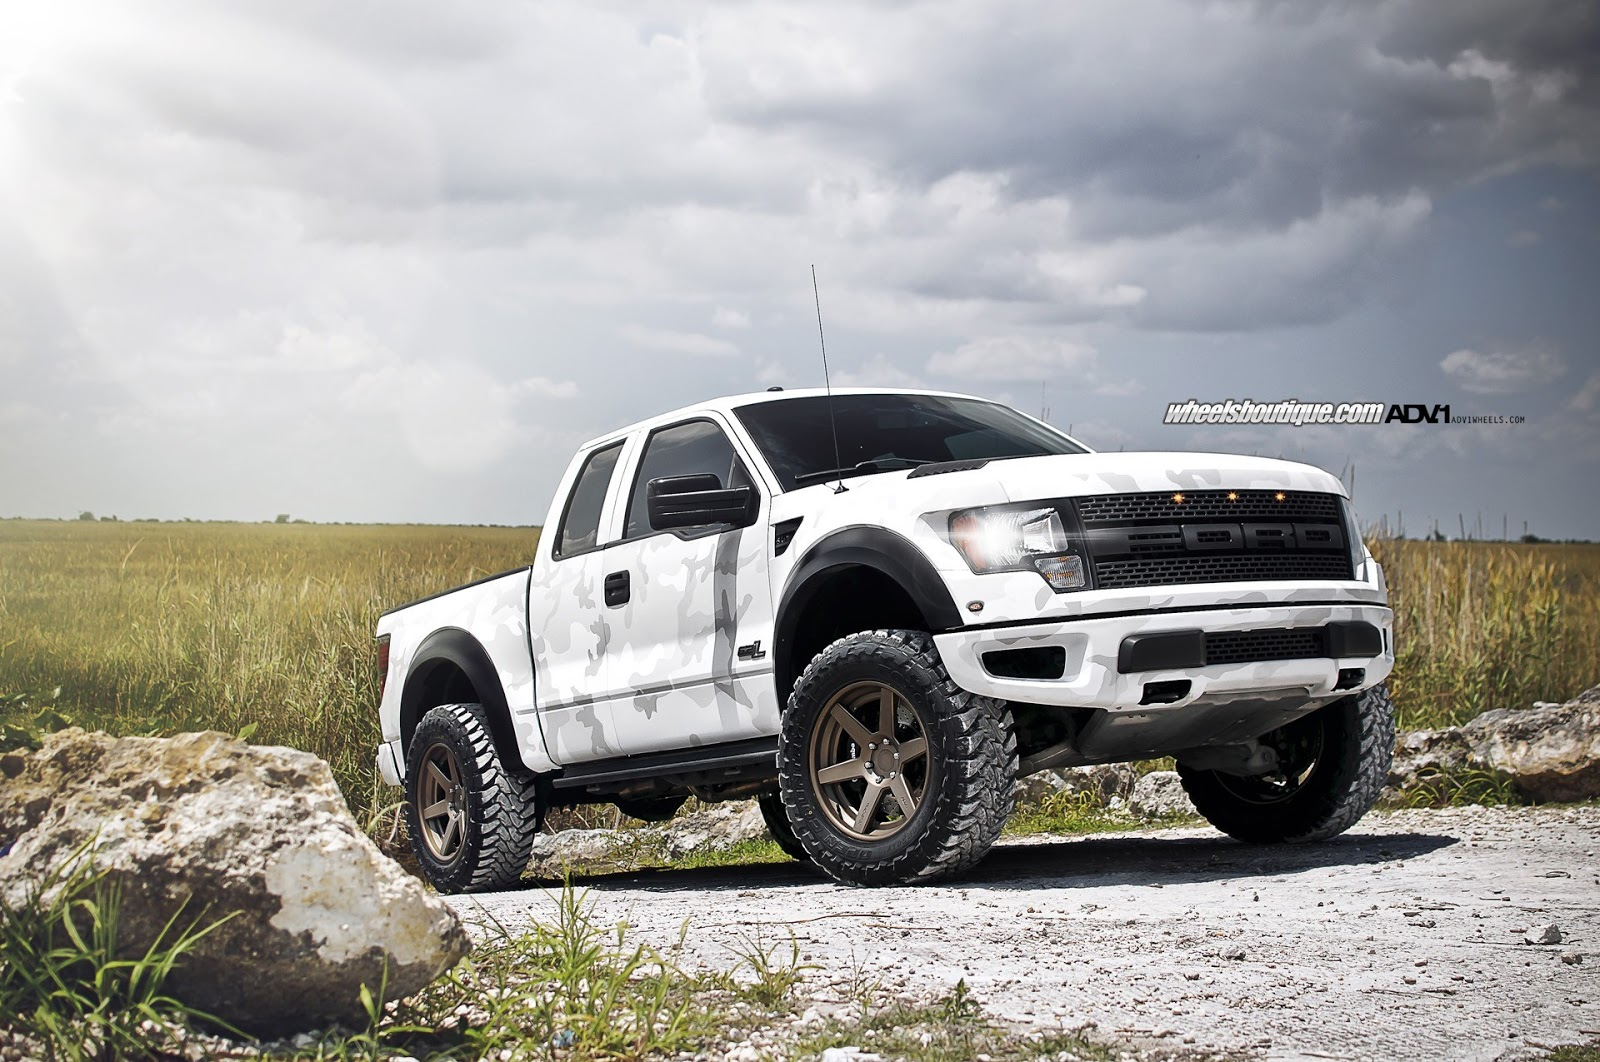 wallpaper ford raptor - photo #24